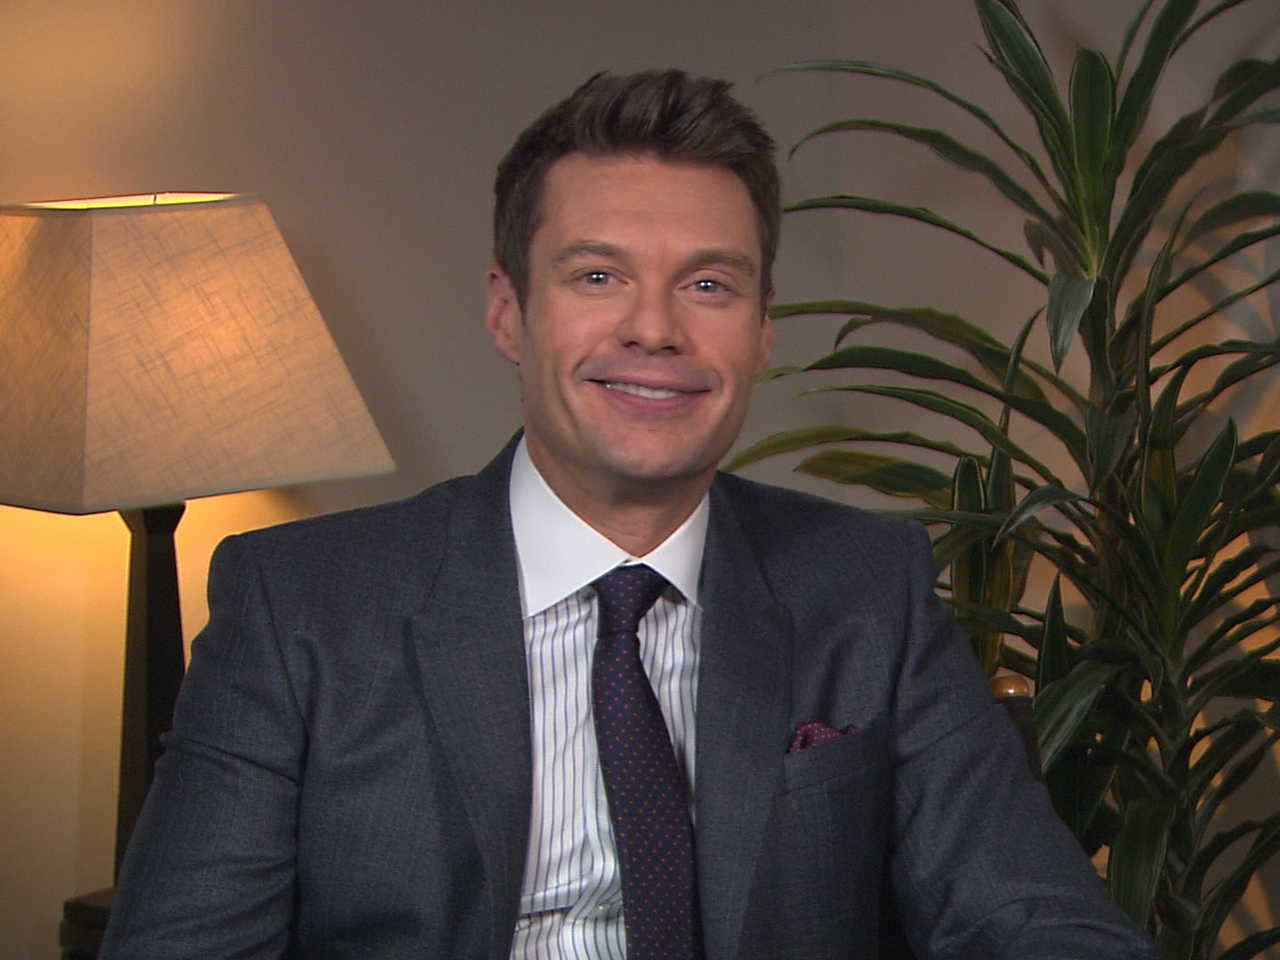 Ryan Seacrest Will Take a Seat Next to Kelly Ripa